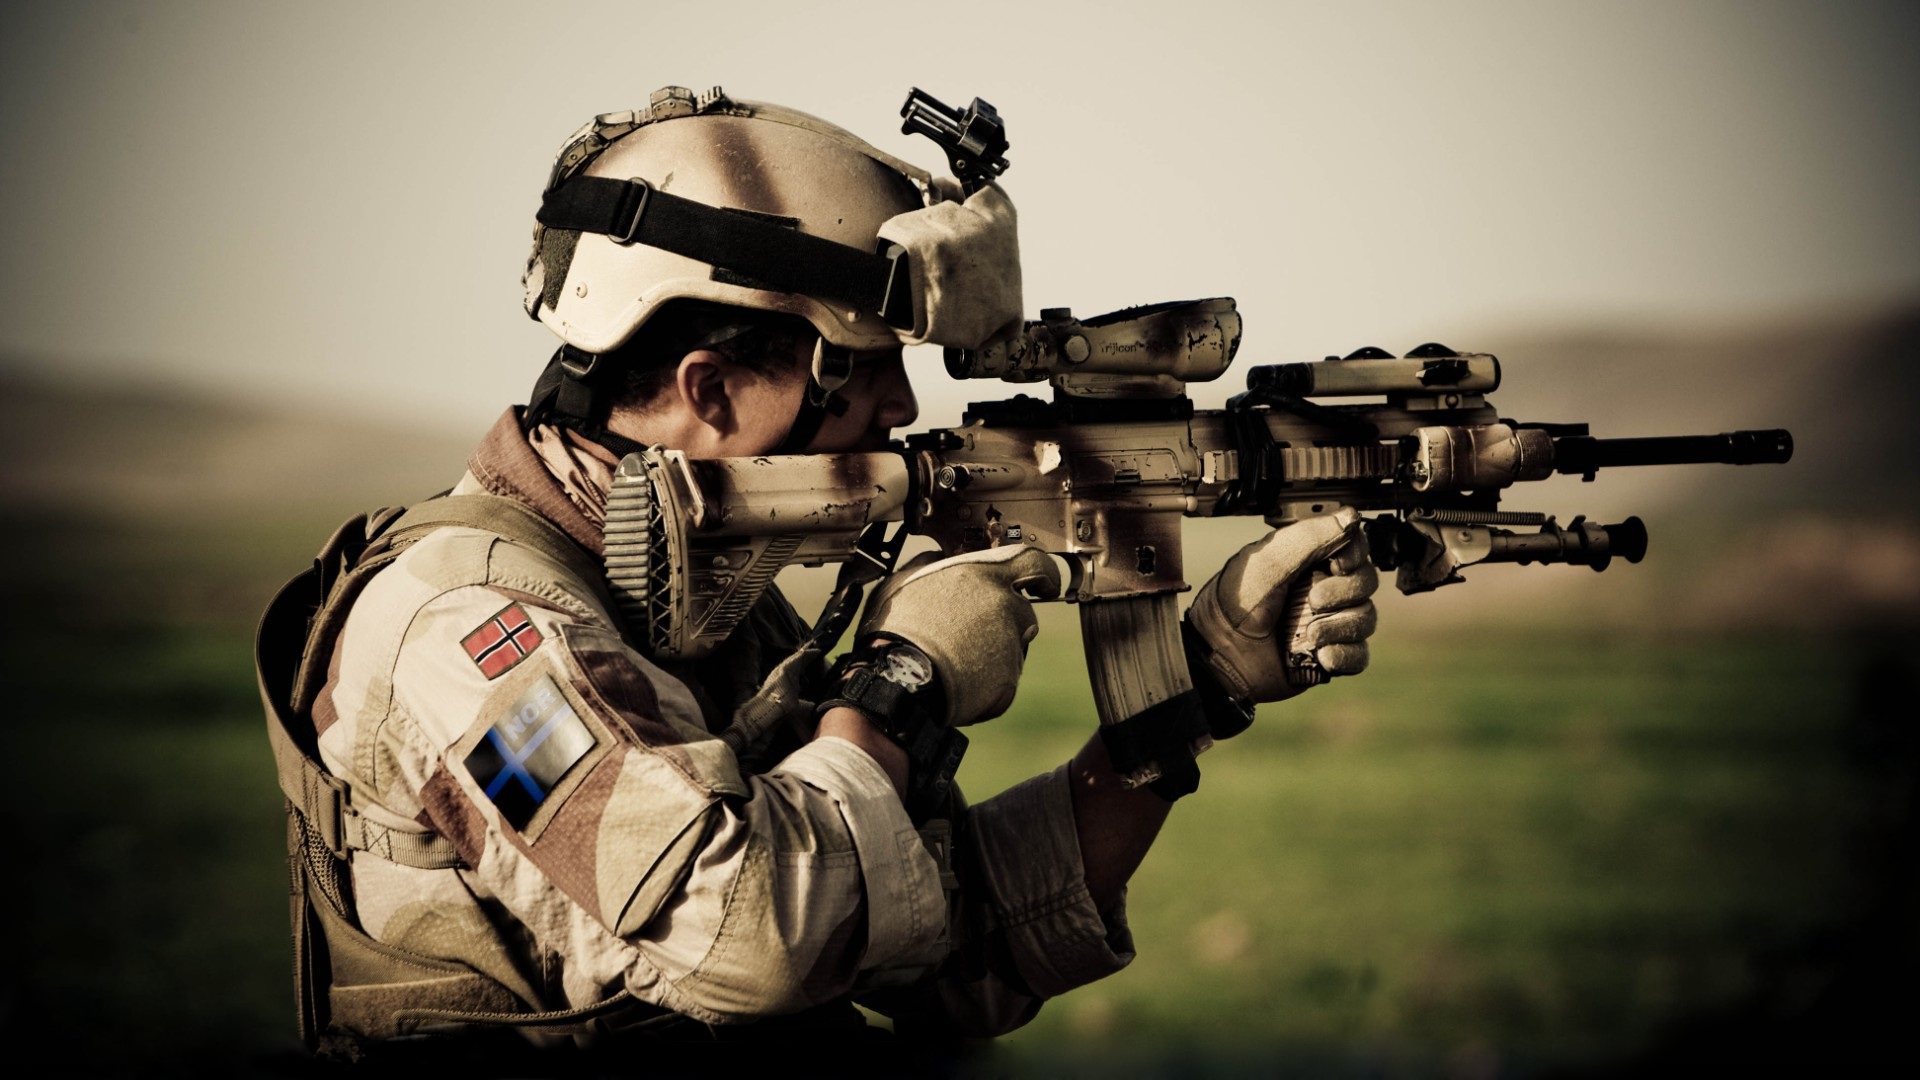 soldier rifle military weapons guns wallpaper 1920x1080